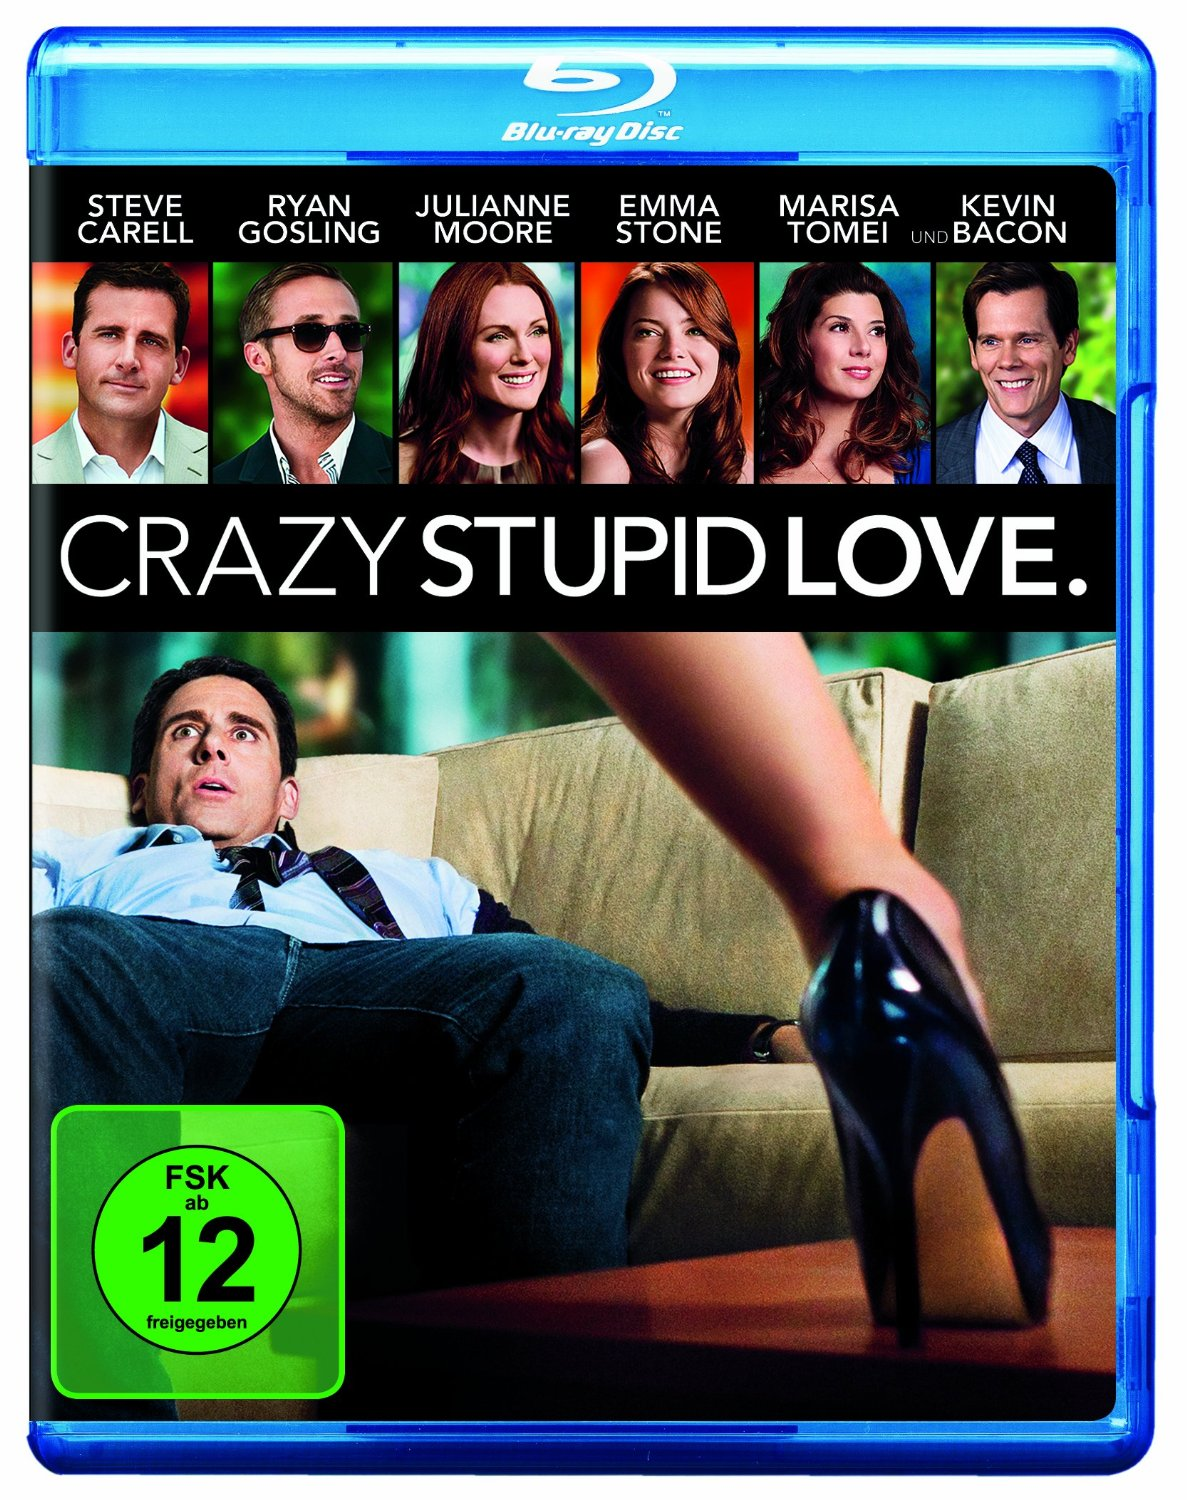 crazy stupid love movie review Crazy stupid love - for coarse humor, sexual content and language director: glenn ficarra, john requa starring: steve carell, ryan.